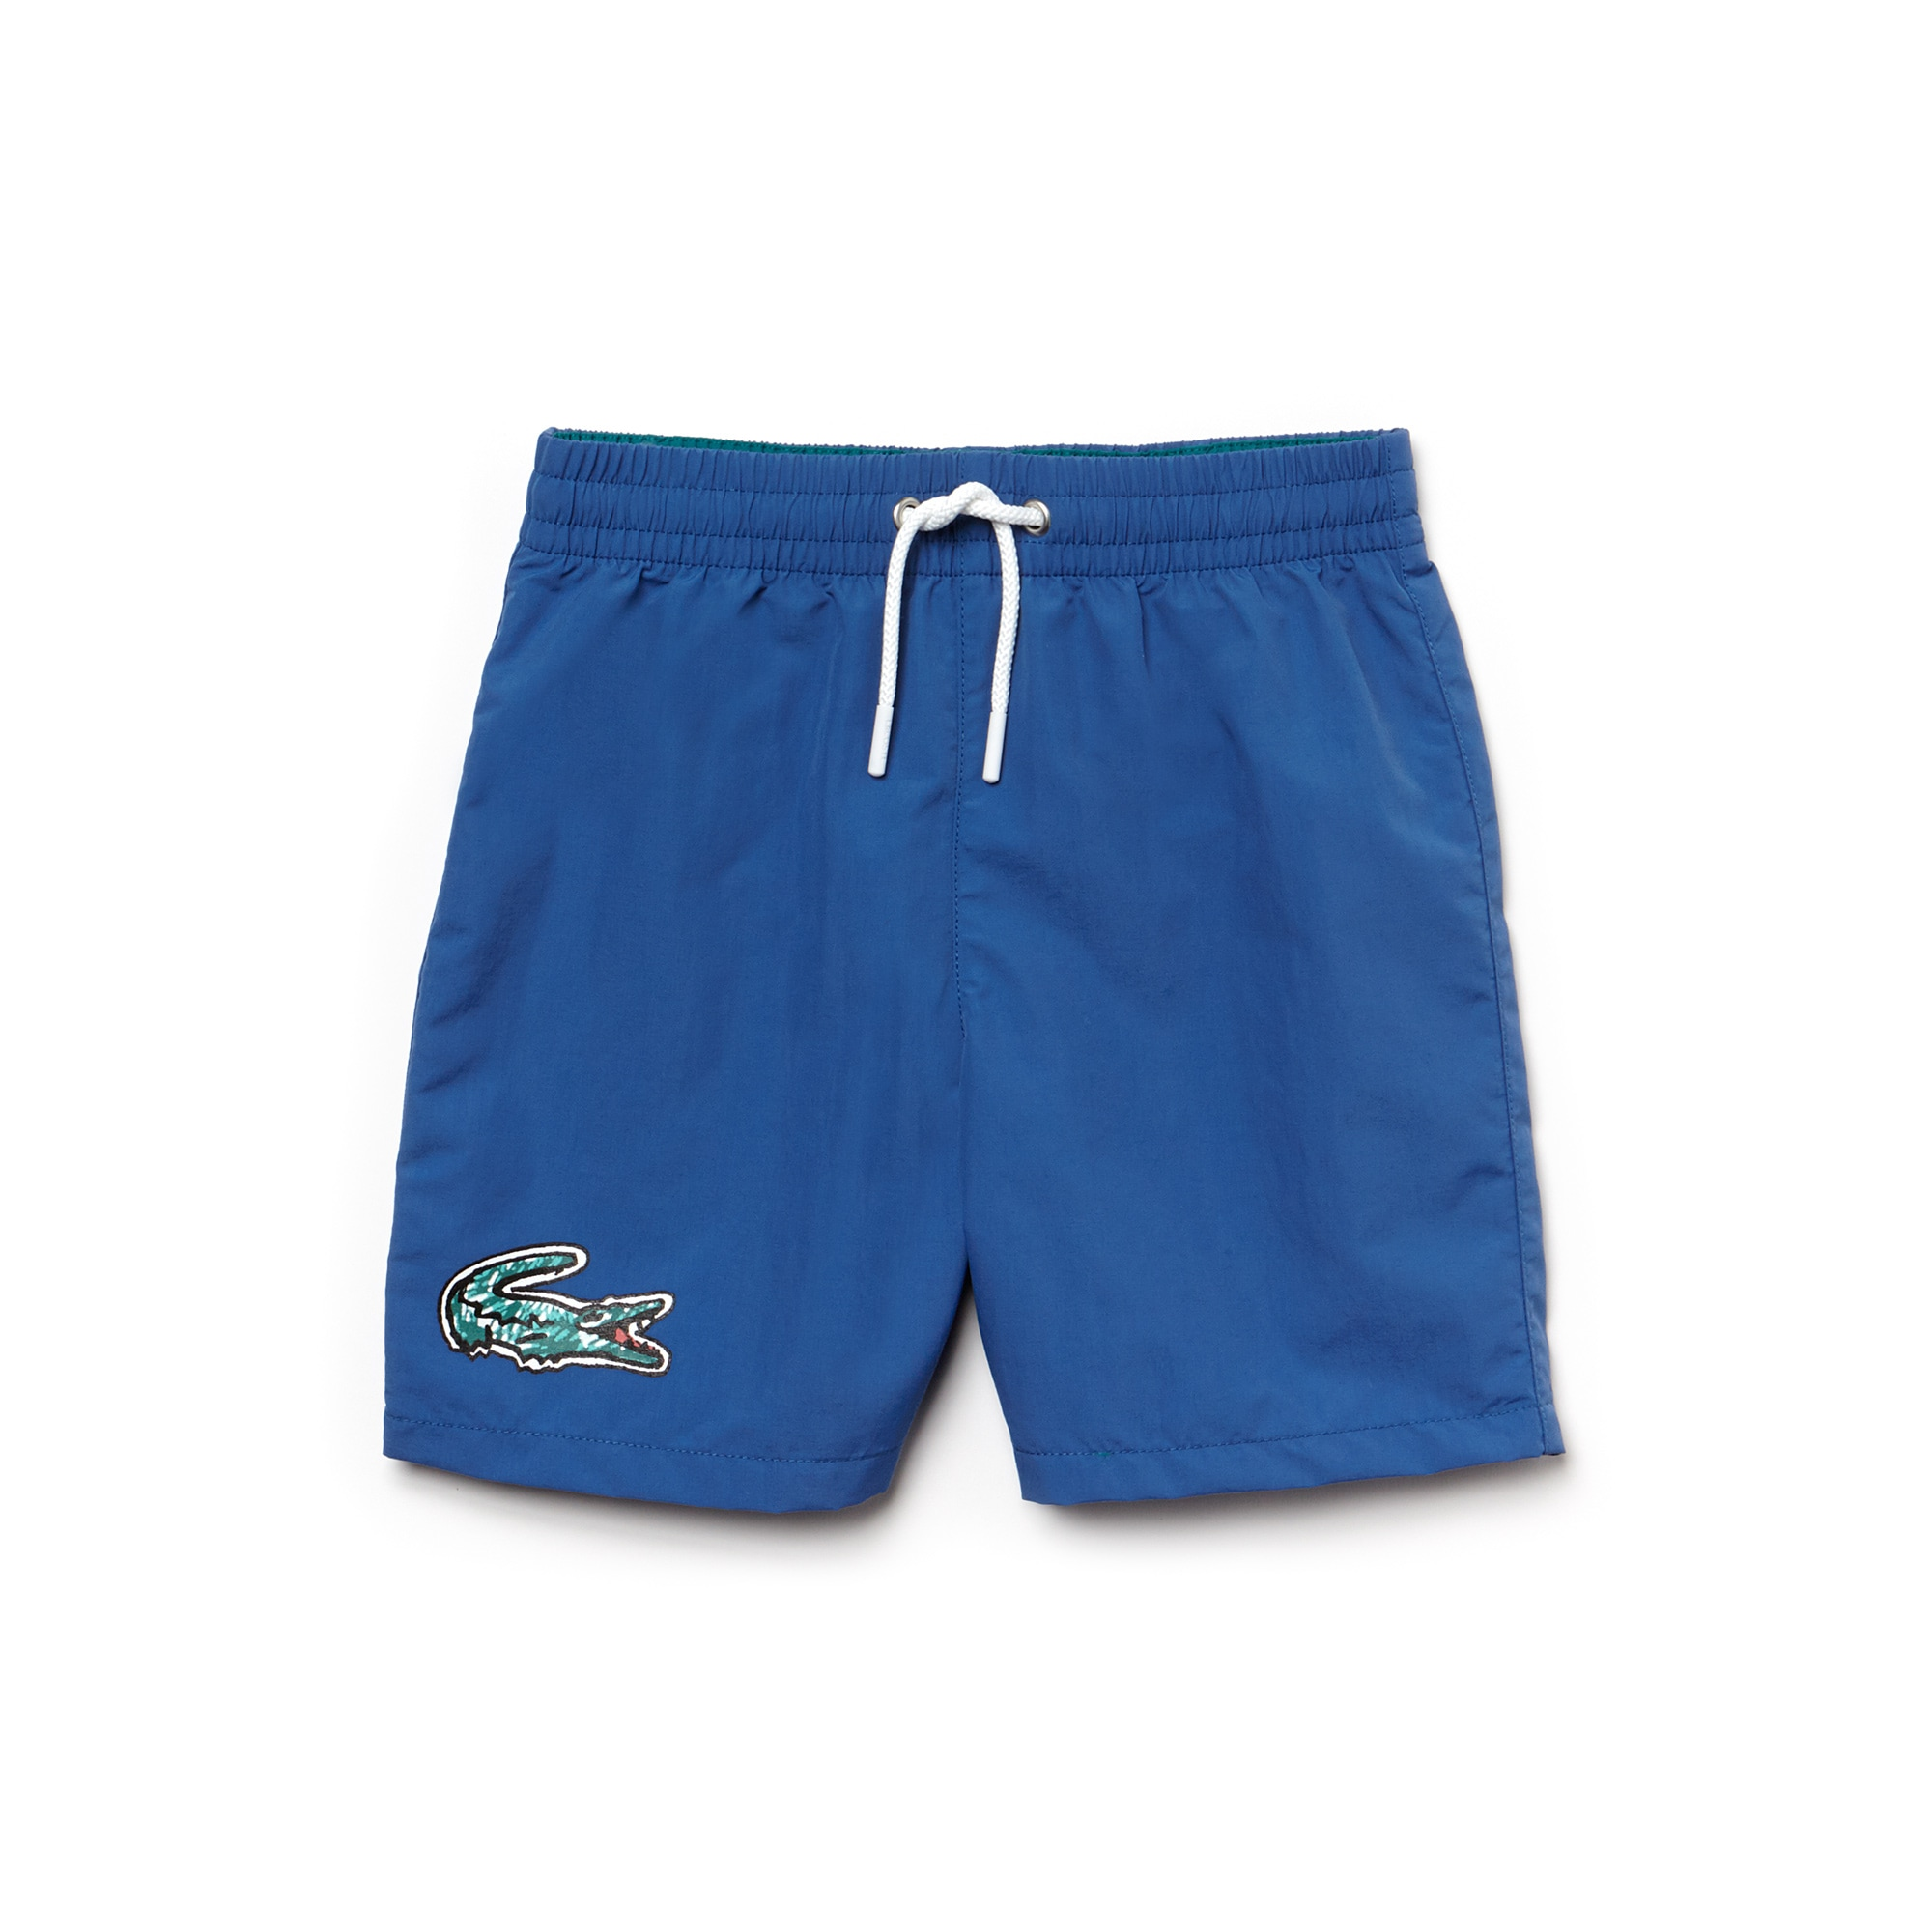 Boys' Oversized Crocodile Swimming Trunks